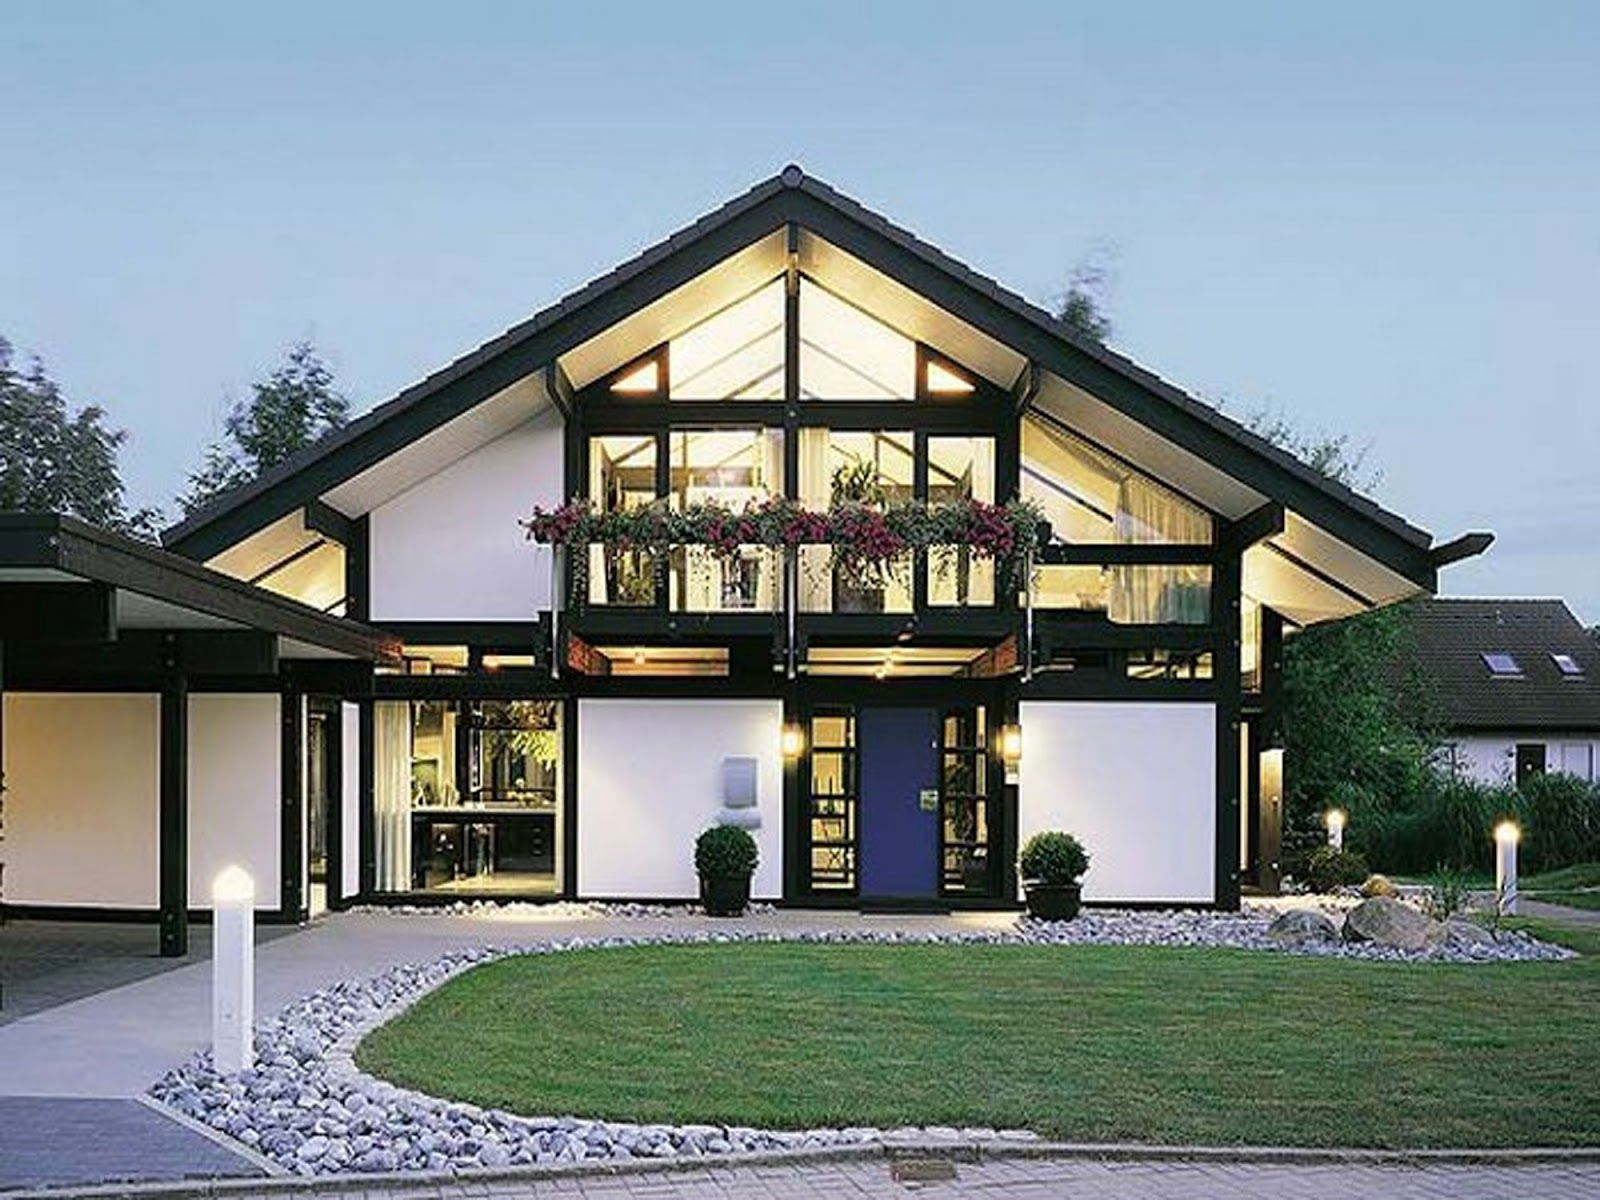 picturesque pictures of contemporary homes. New Home Designs Latest Beautiful Modern Contemporary House Design Ideas